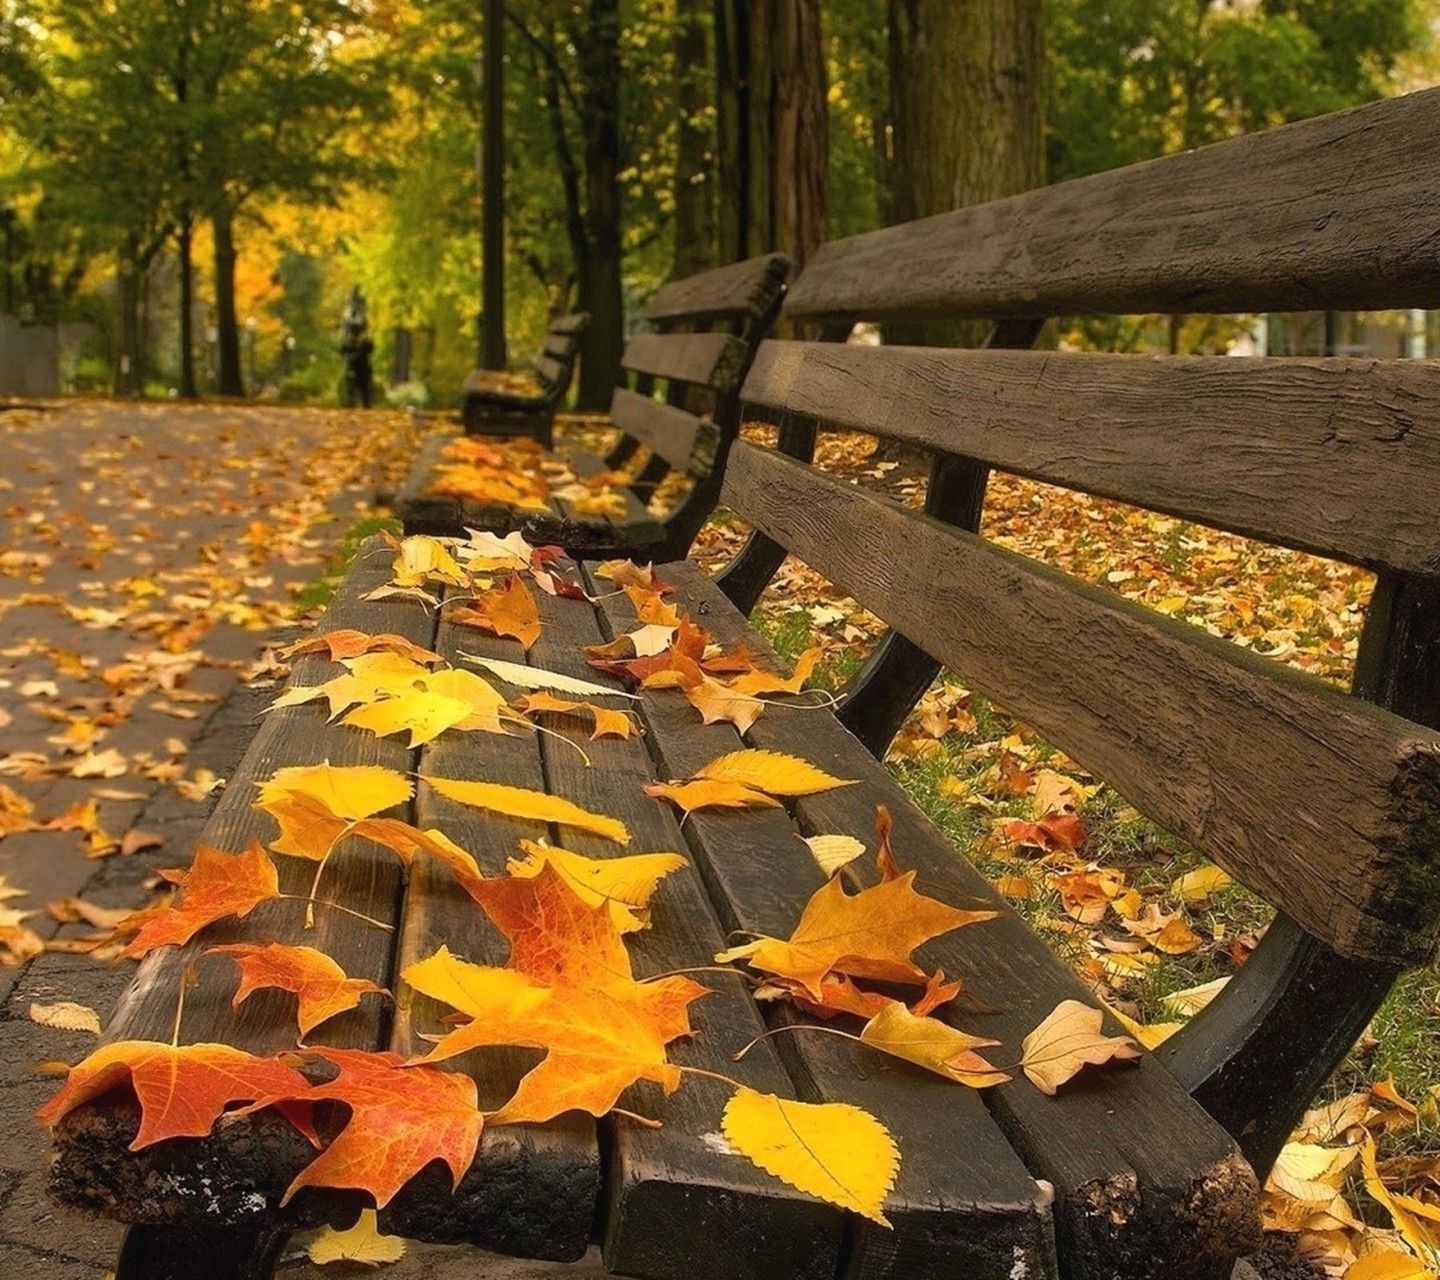 Download Hd Wallpapers Of 306331 Nature Leaves Bench Free Download High Quality And Widescreen Resol Desktop Background Images Wallpaper Backgrounds Desktop